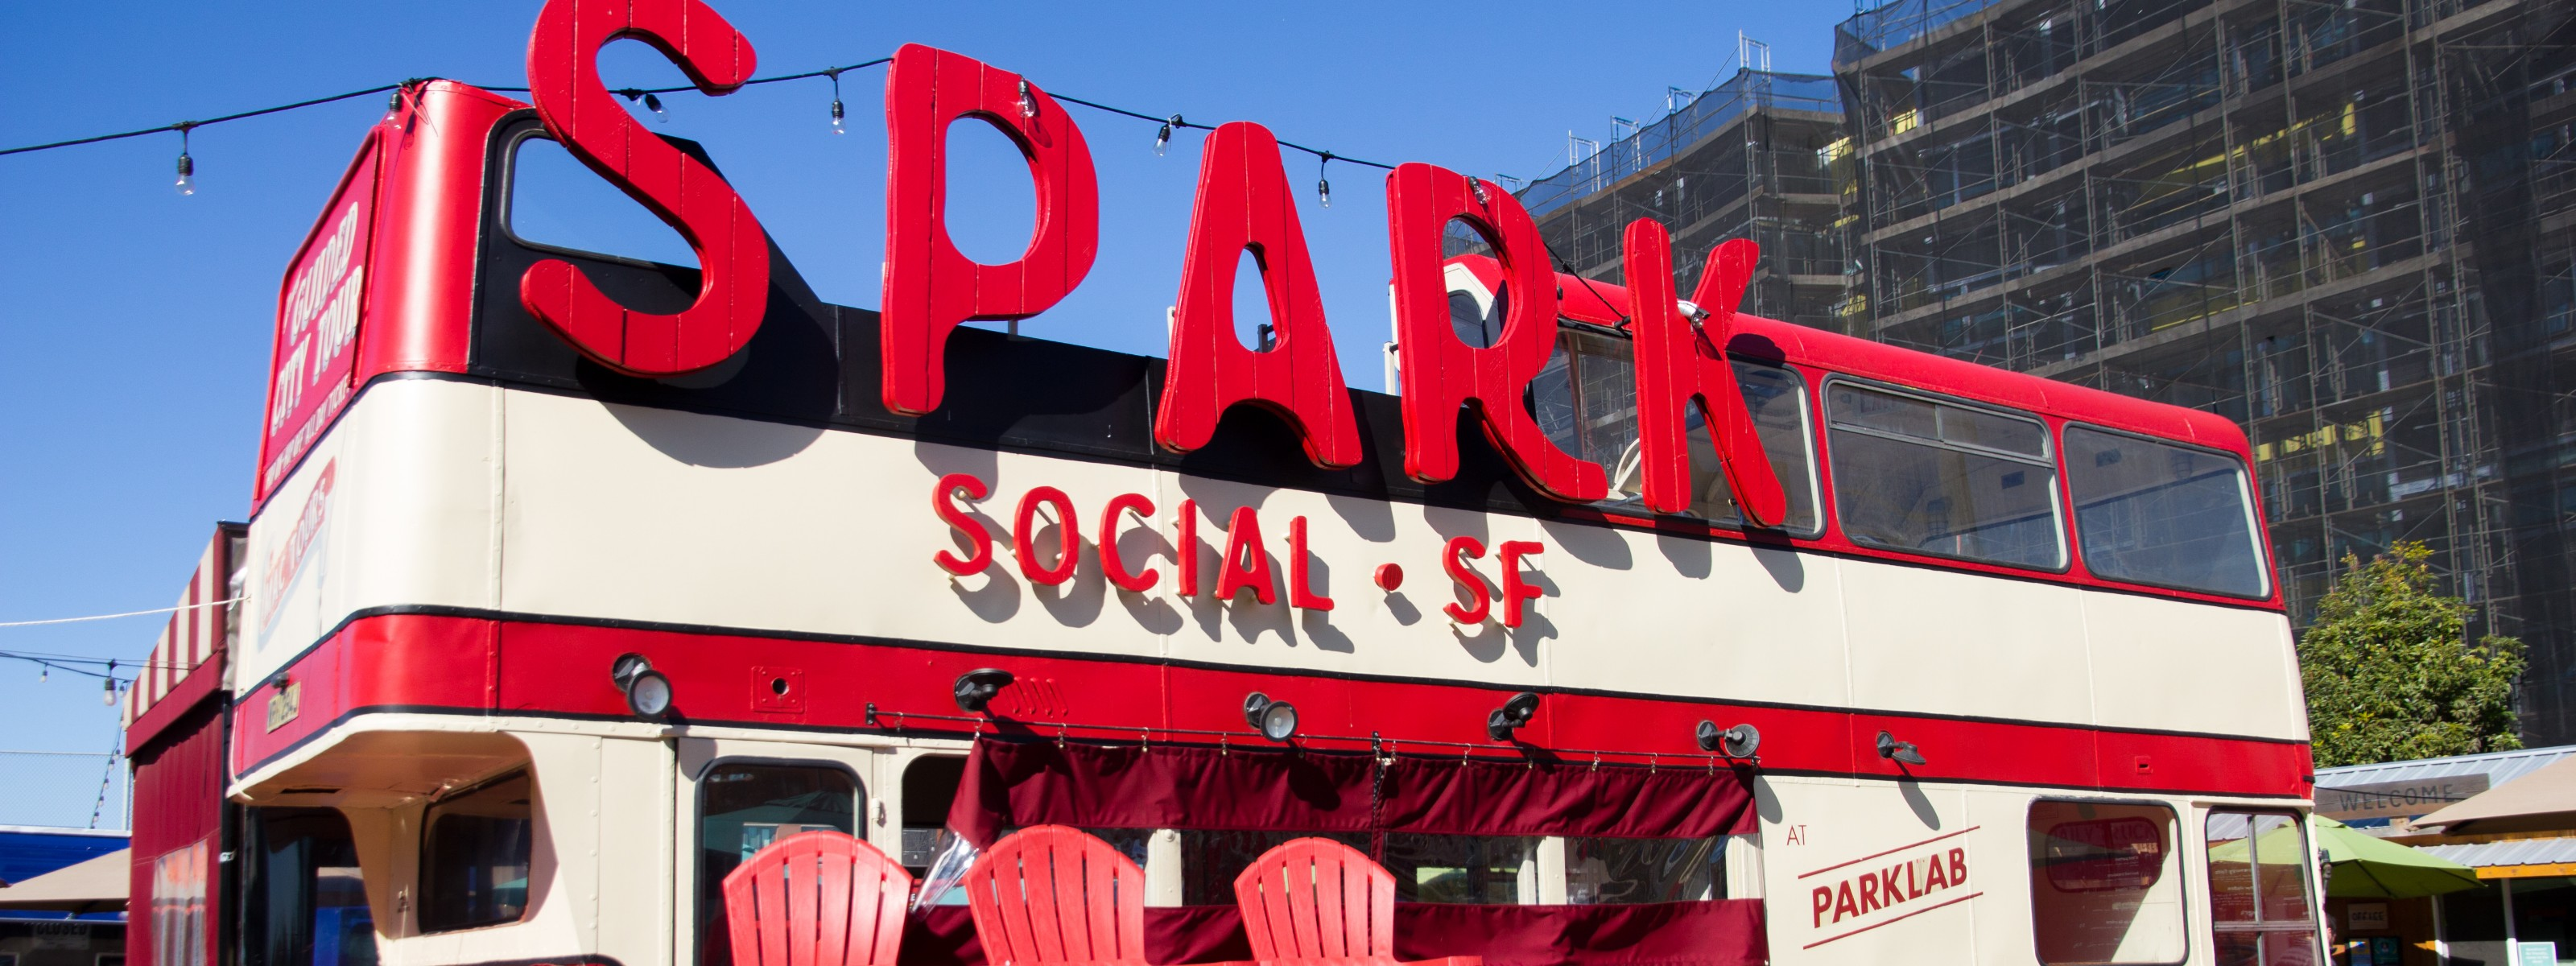 Spark Social Sf - Dogpatch - San Francisco - The Infatuation